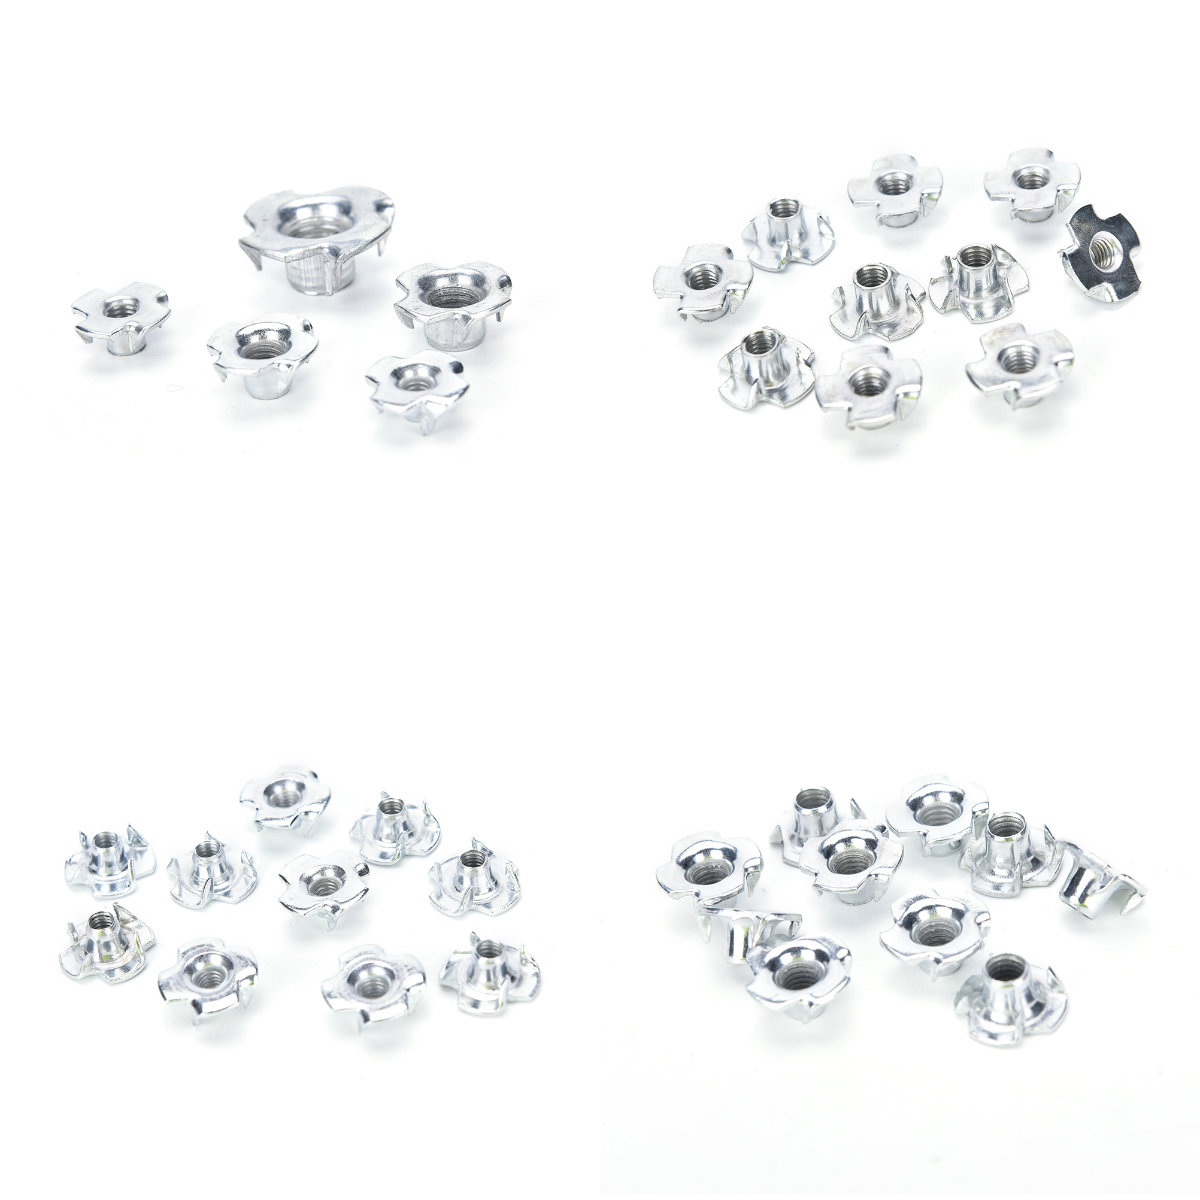 10PCS/lot Top Quality Zinc M4 M5 M6 M8 M10 Threaded Insert Nut Furniture Nuts For Wood Hex Socket Screw Flanged Barbed